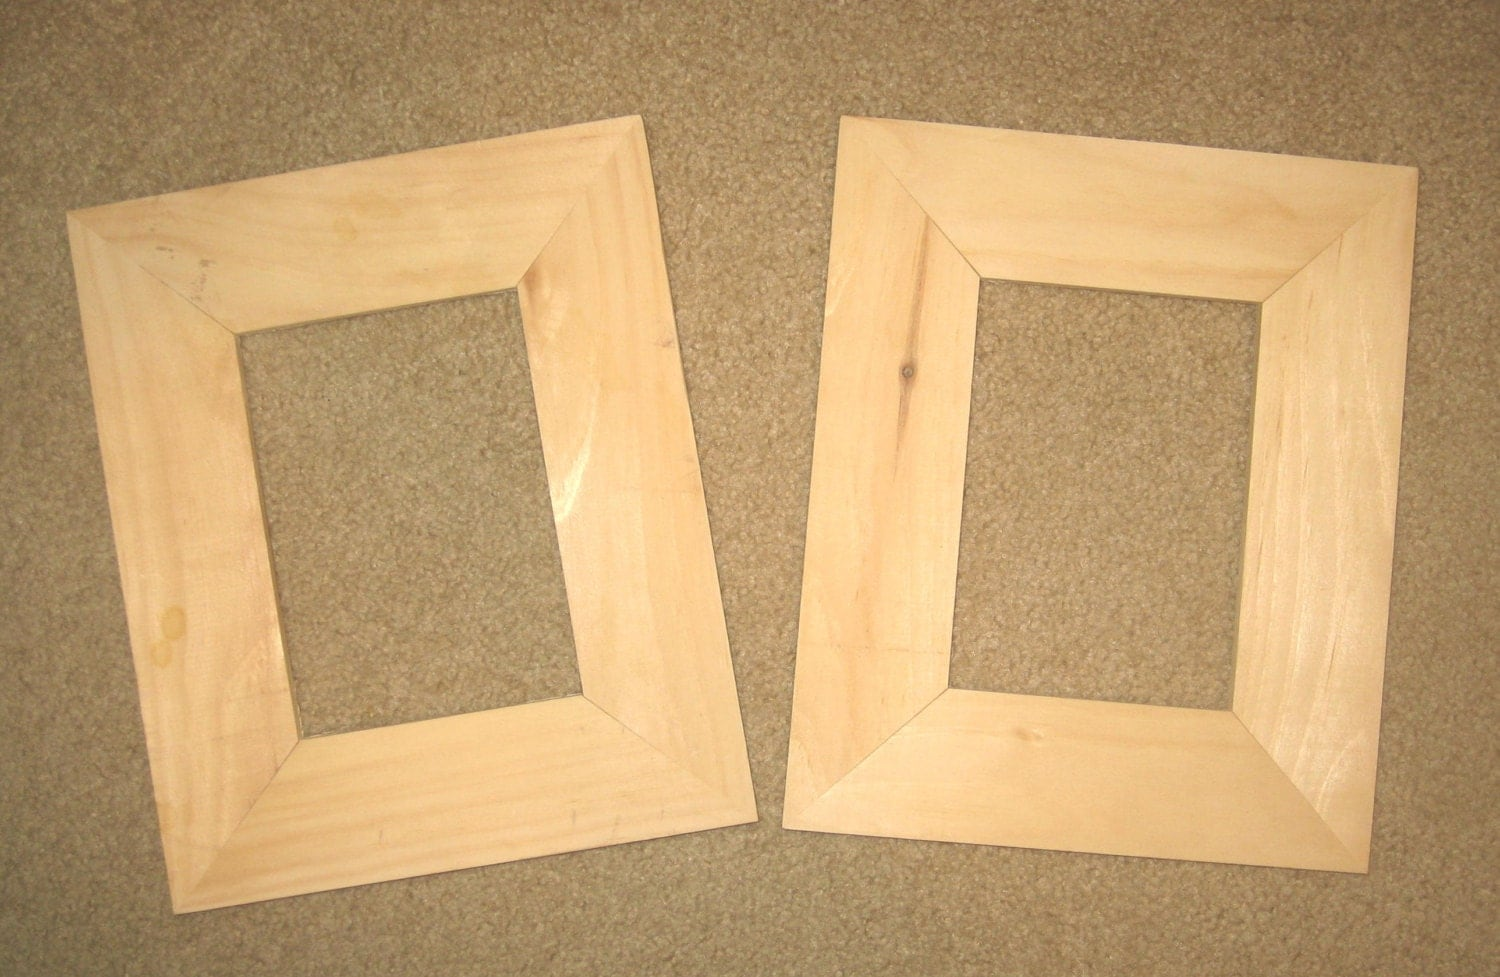 Picture Frames 2 Unfinished 5x7 Wood My No 5813g